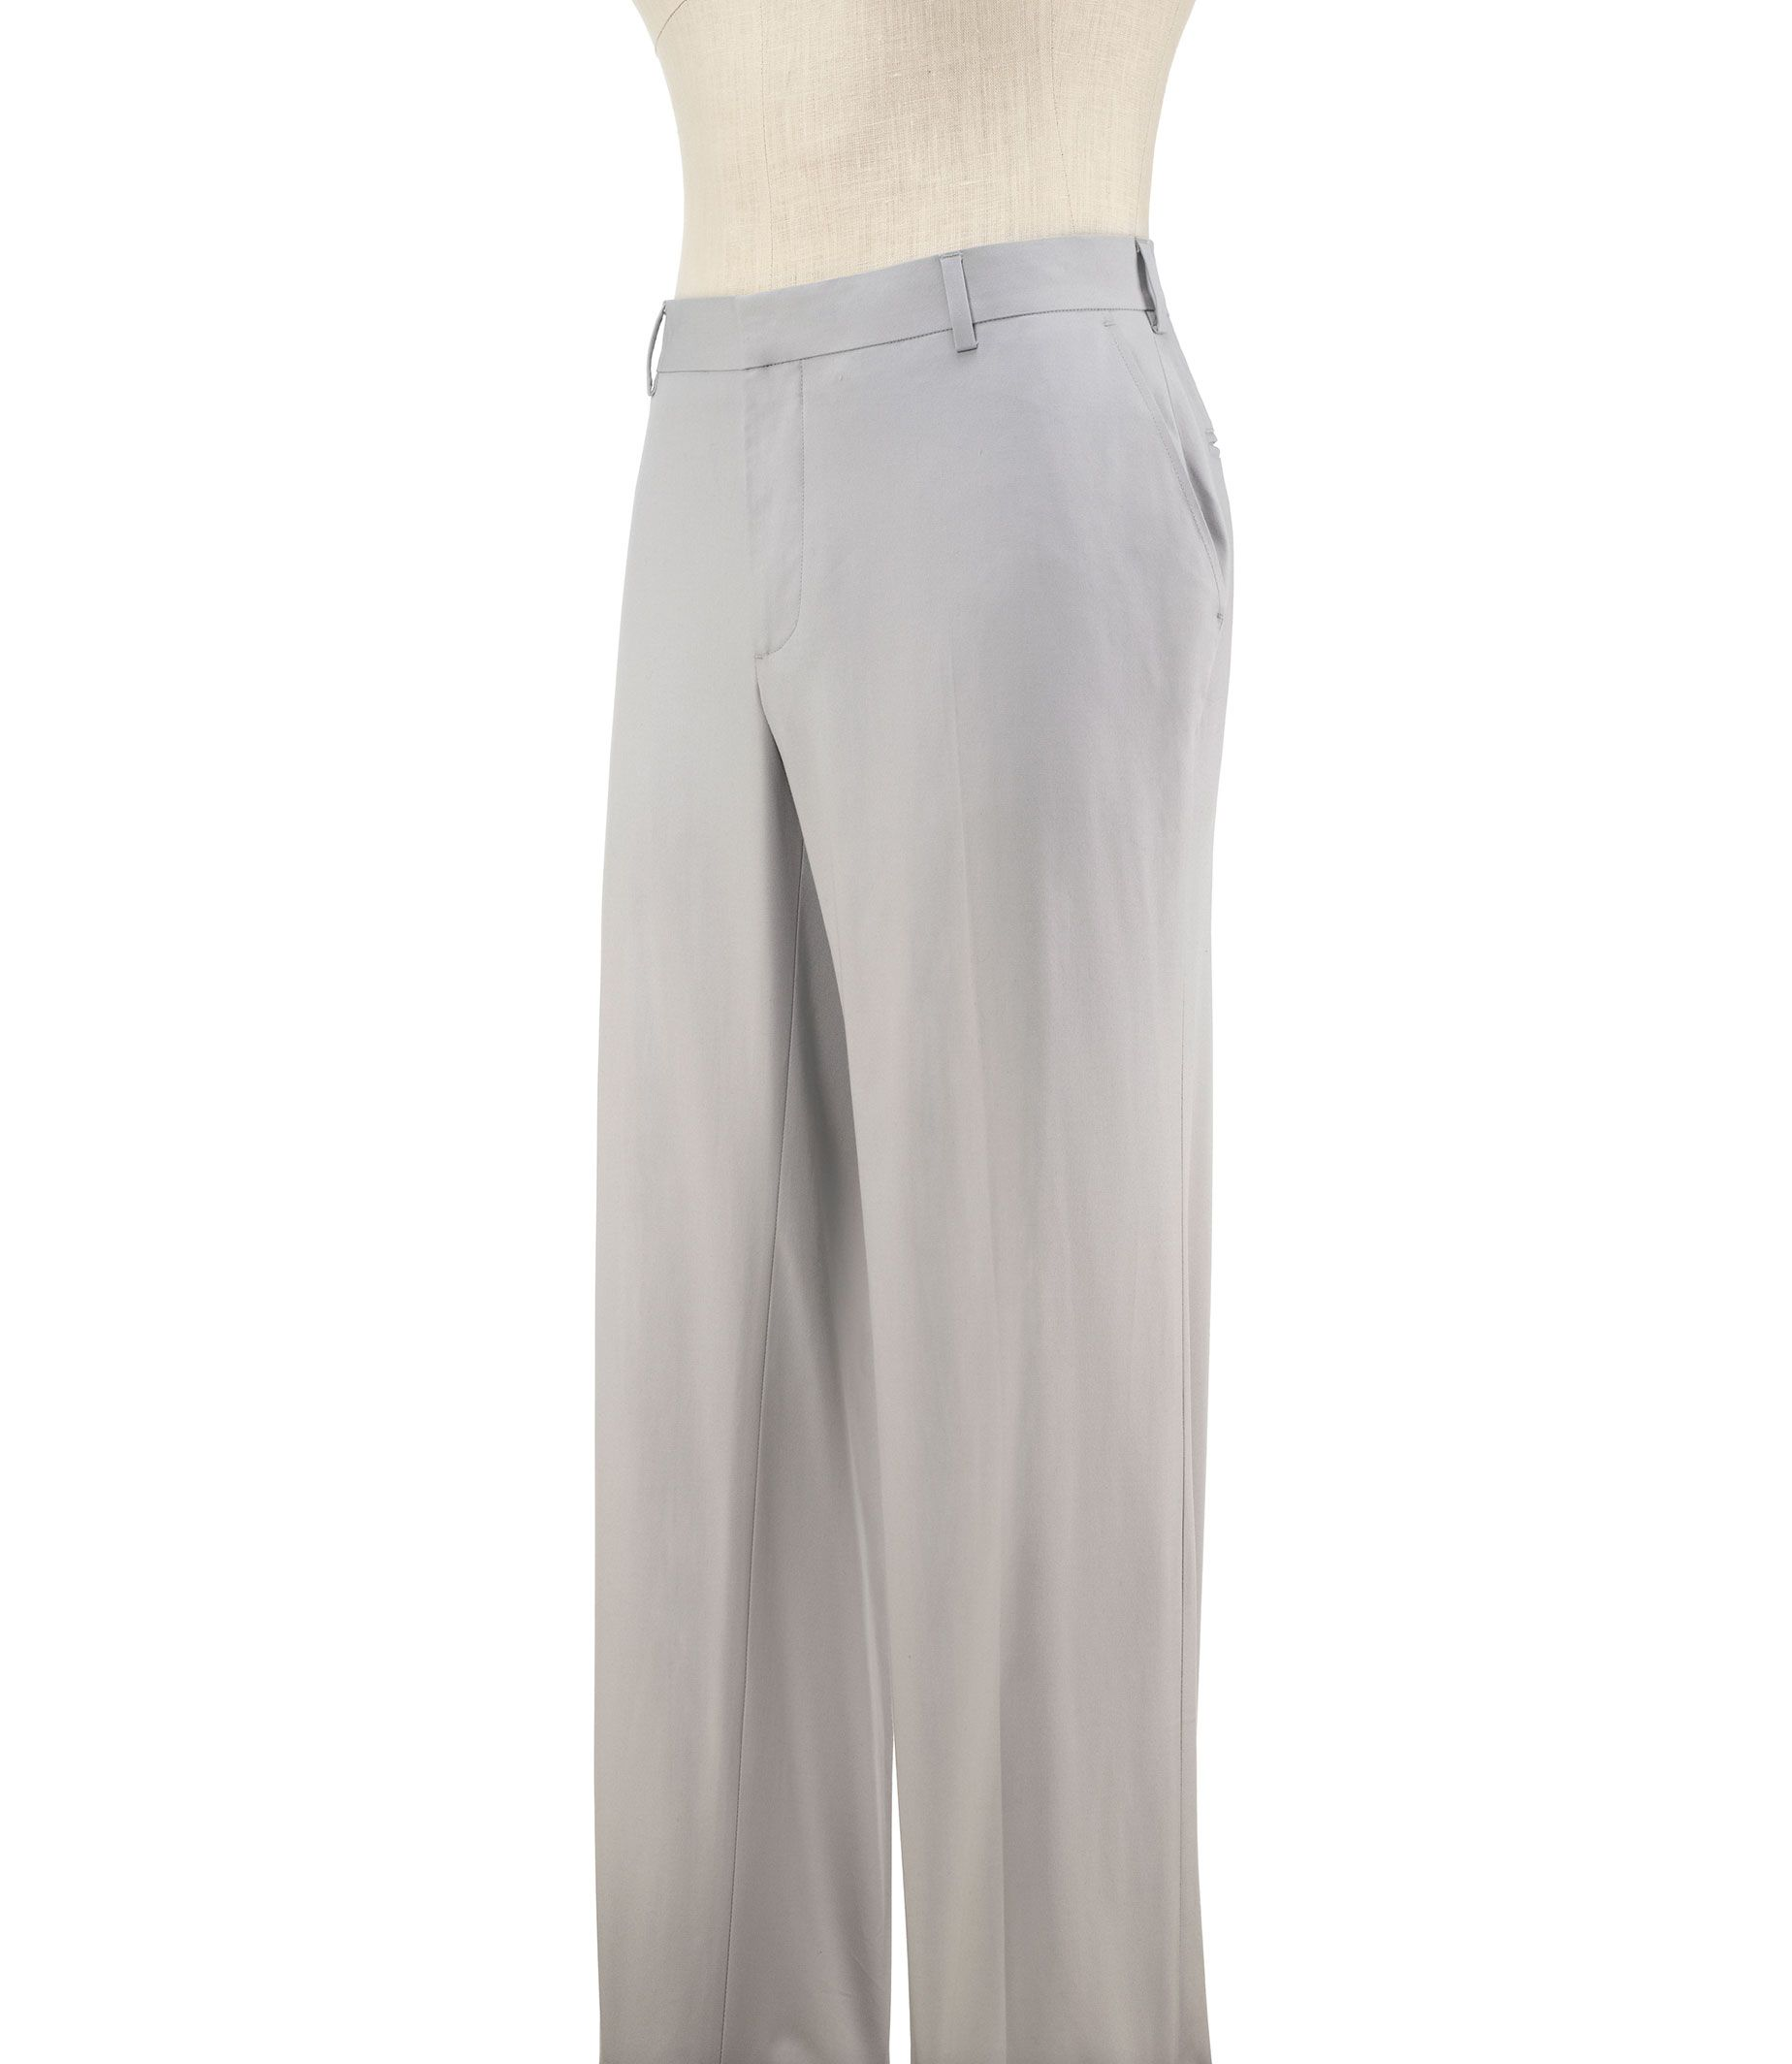 Stays Cool Tailored Fit Pants Extended Sizes